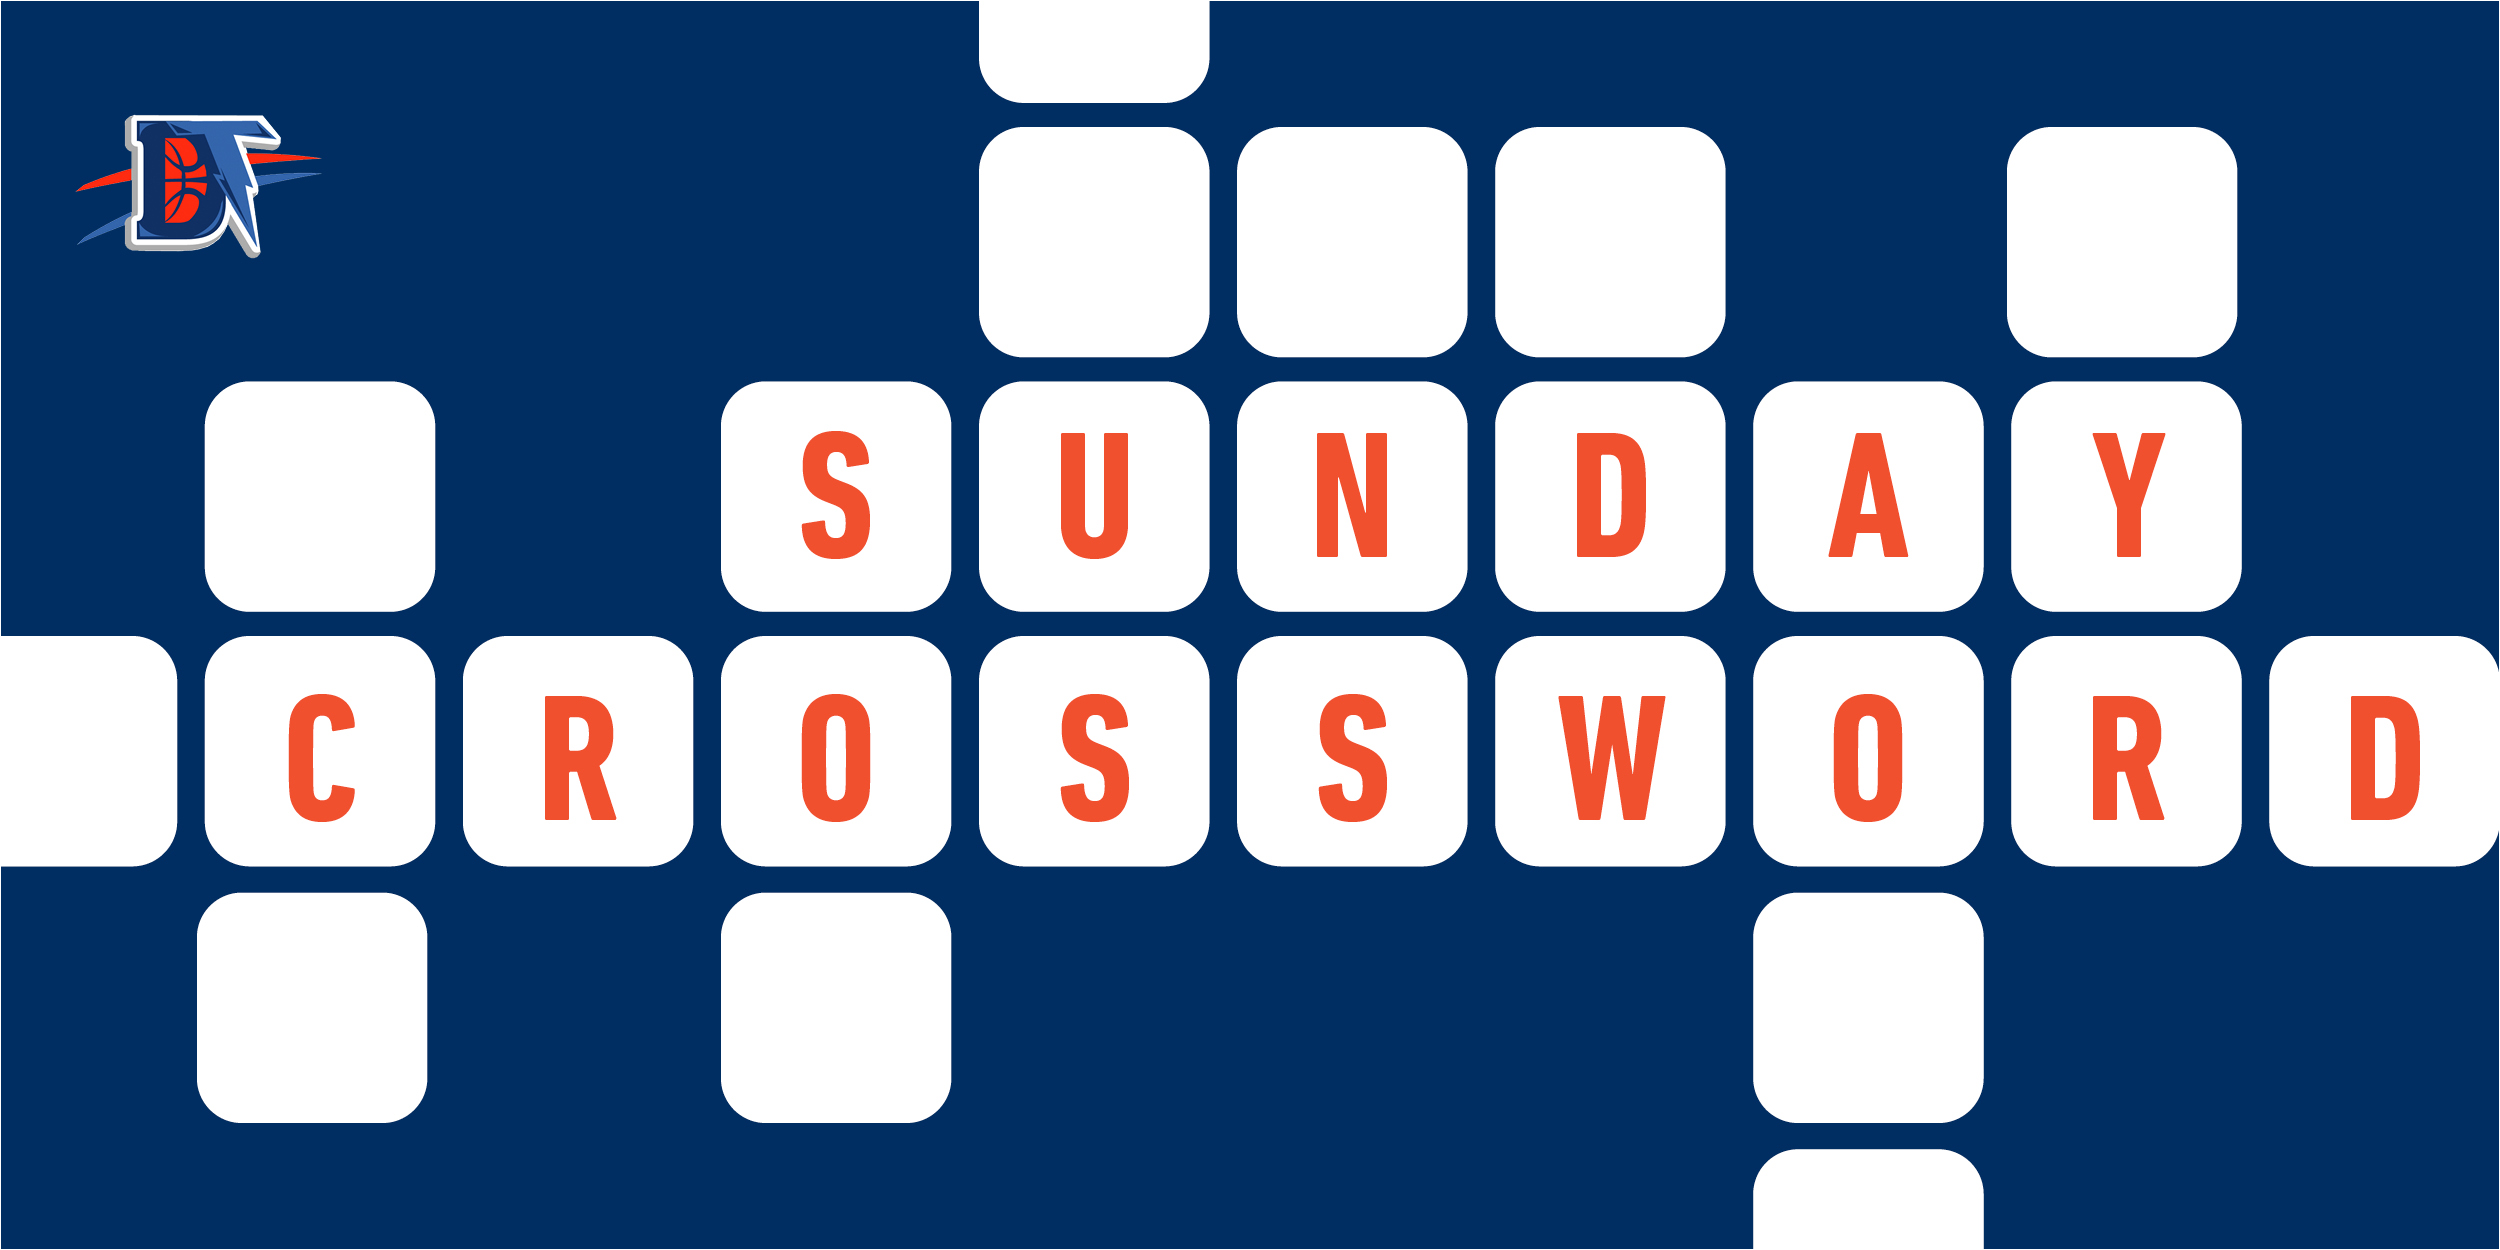 Sunday Crossword: The Long and Short of It